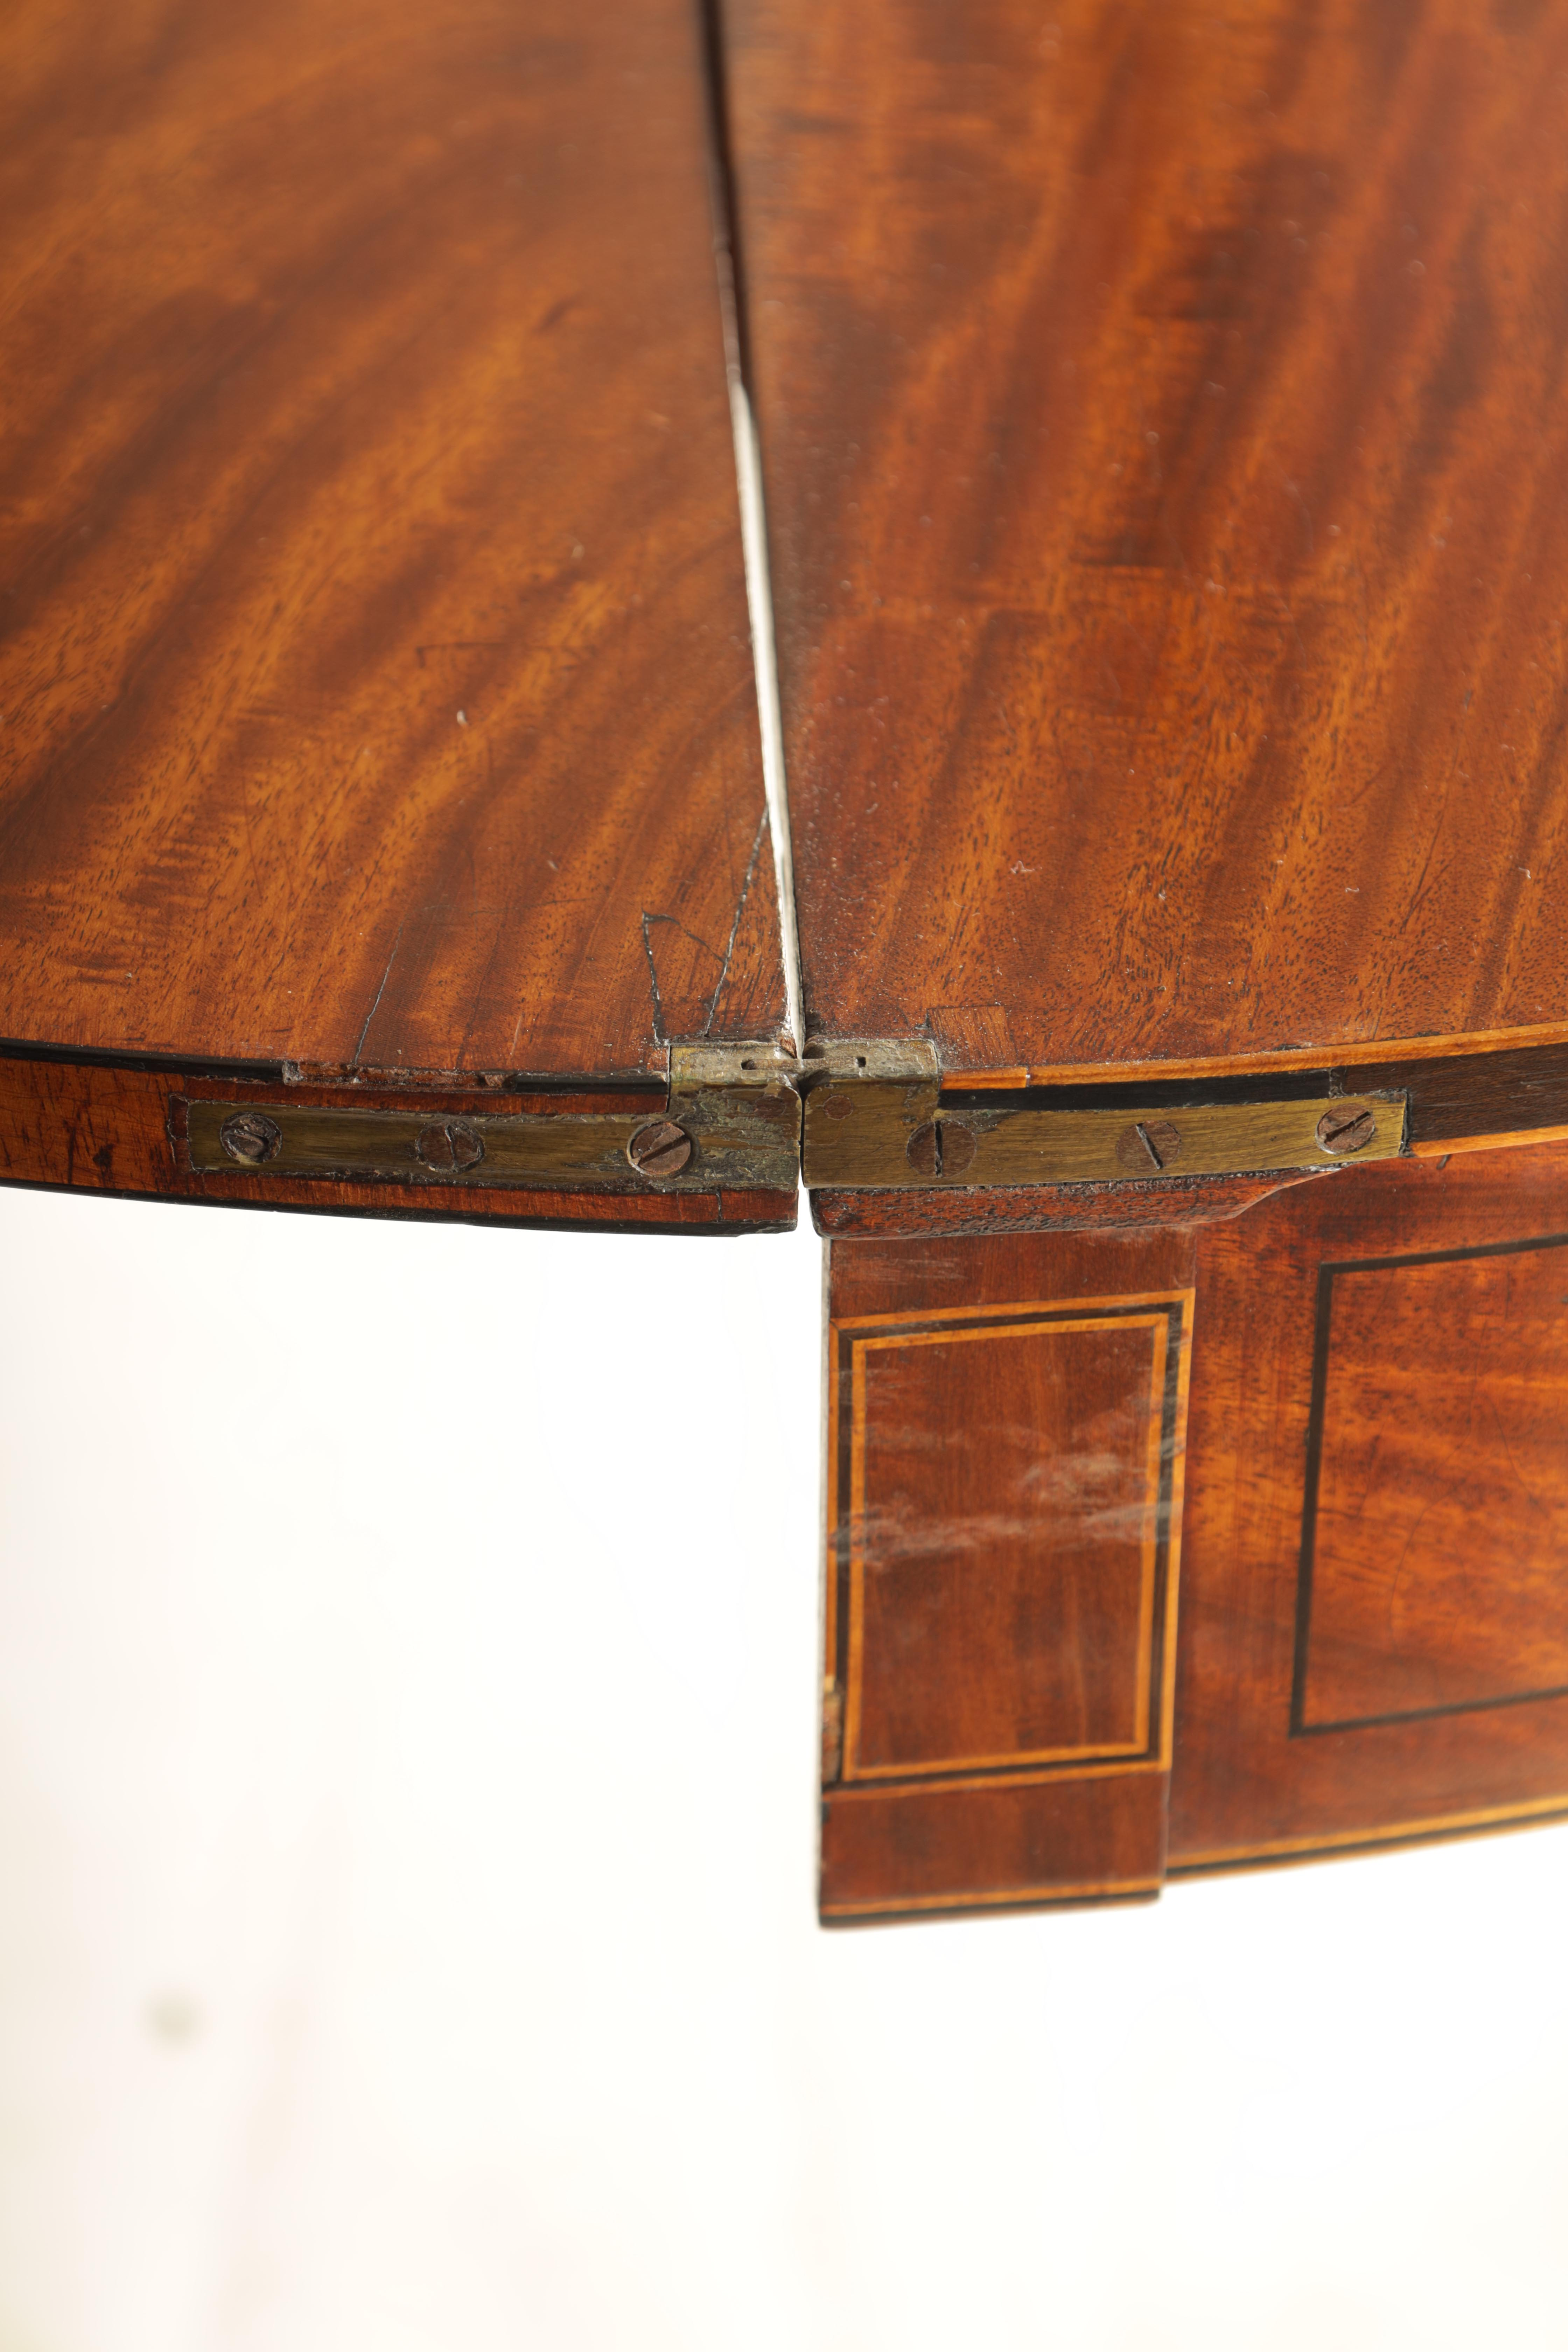 A GEORGE III FIGURED SATINWOOD D END TEA TABLE with hinged top and double gate rear legs; standing - Image 7 of 8